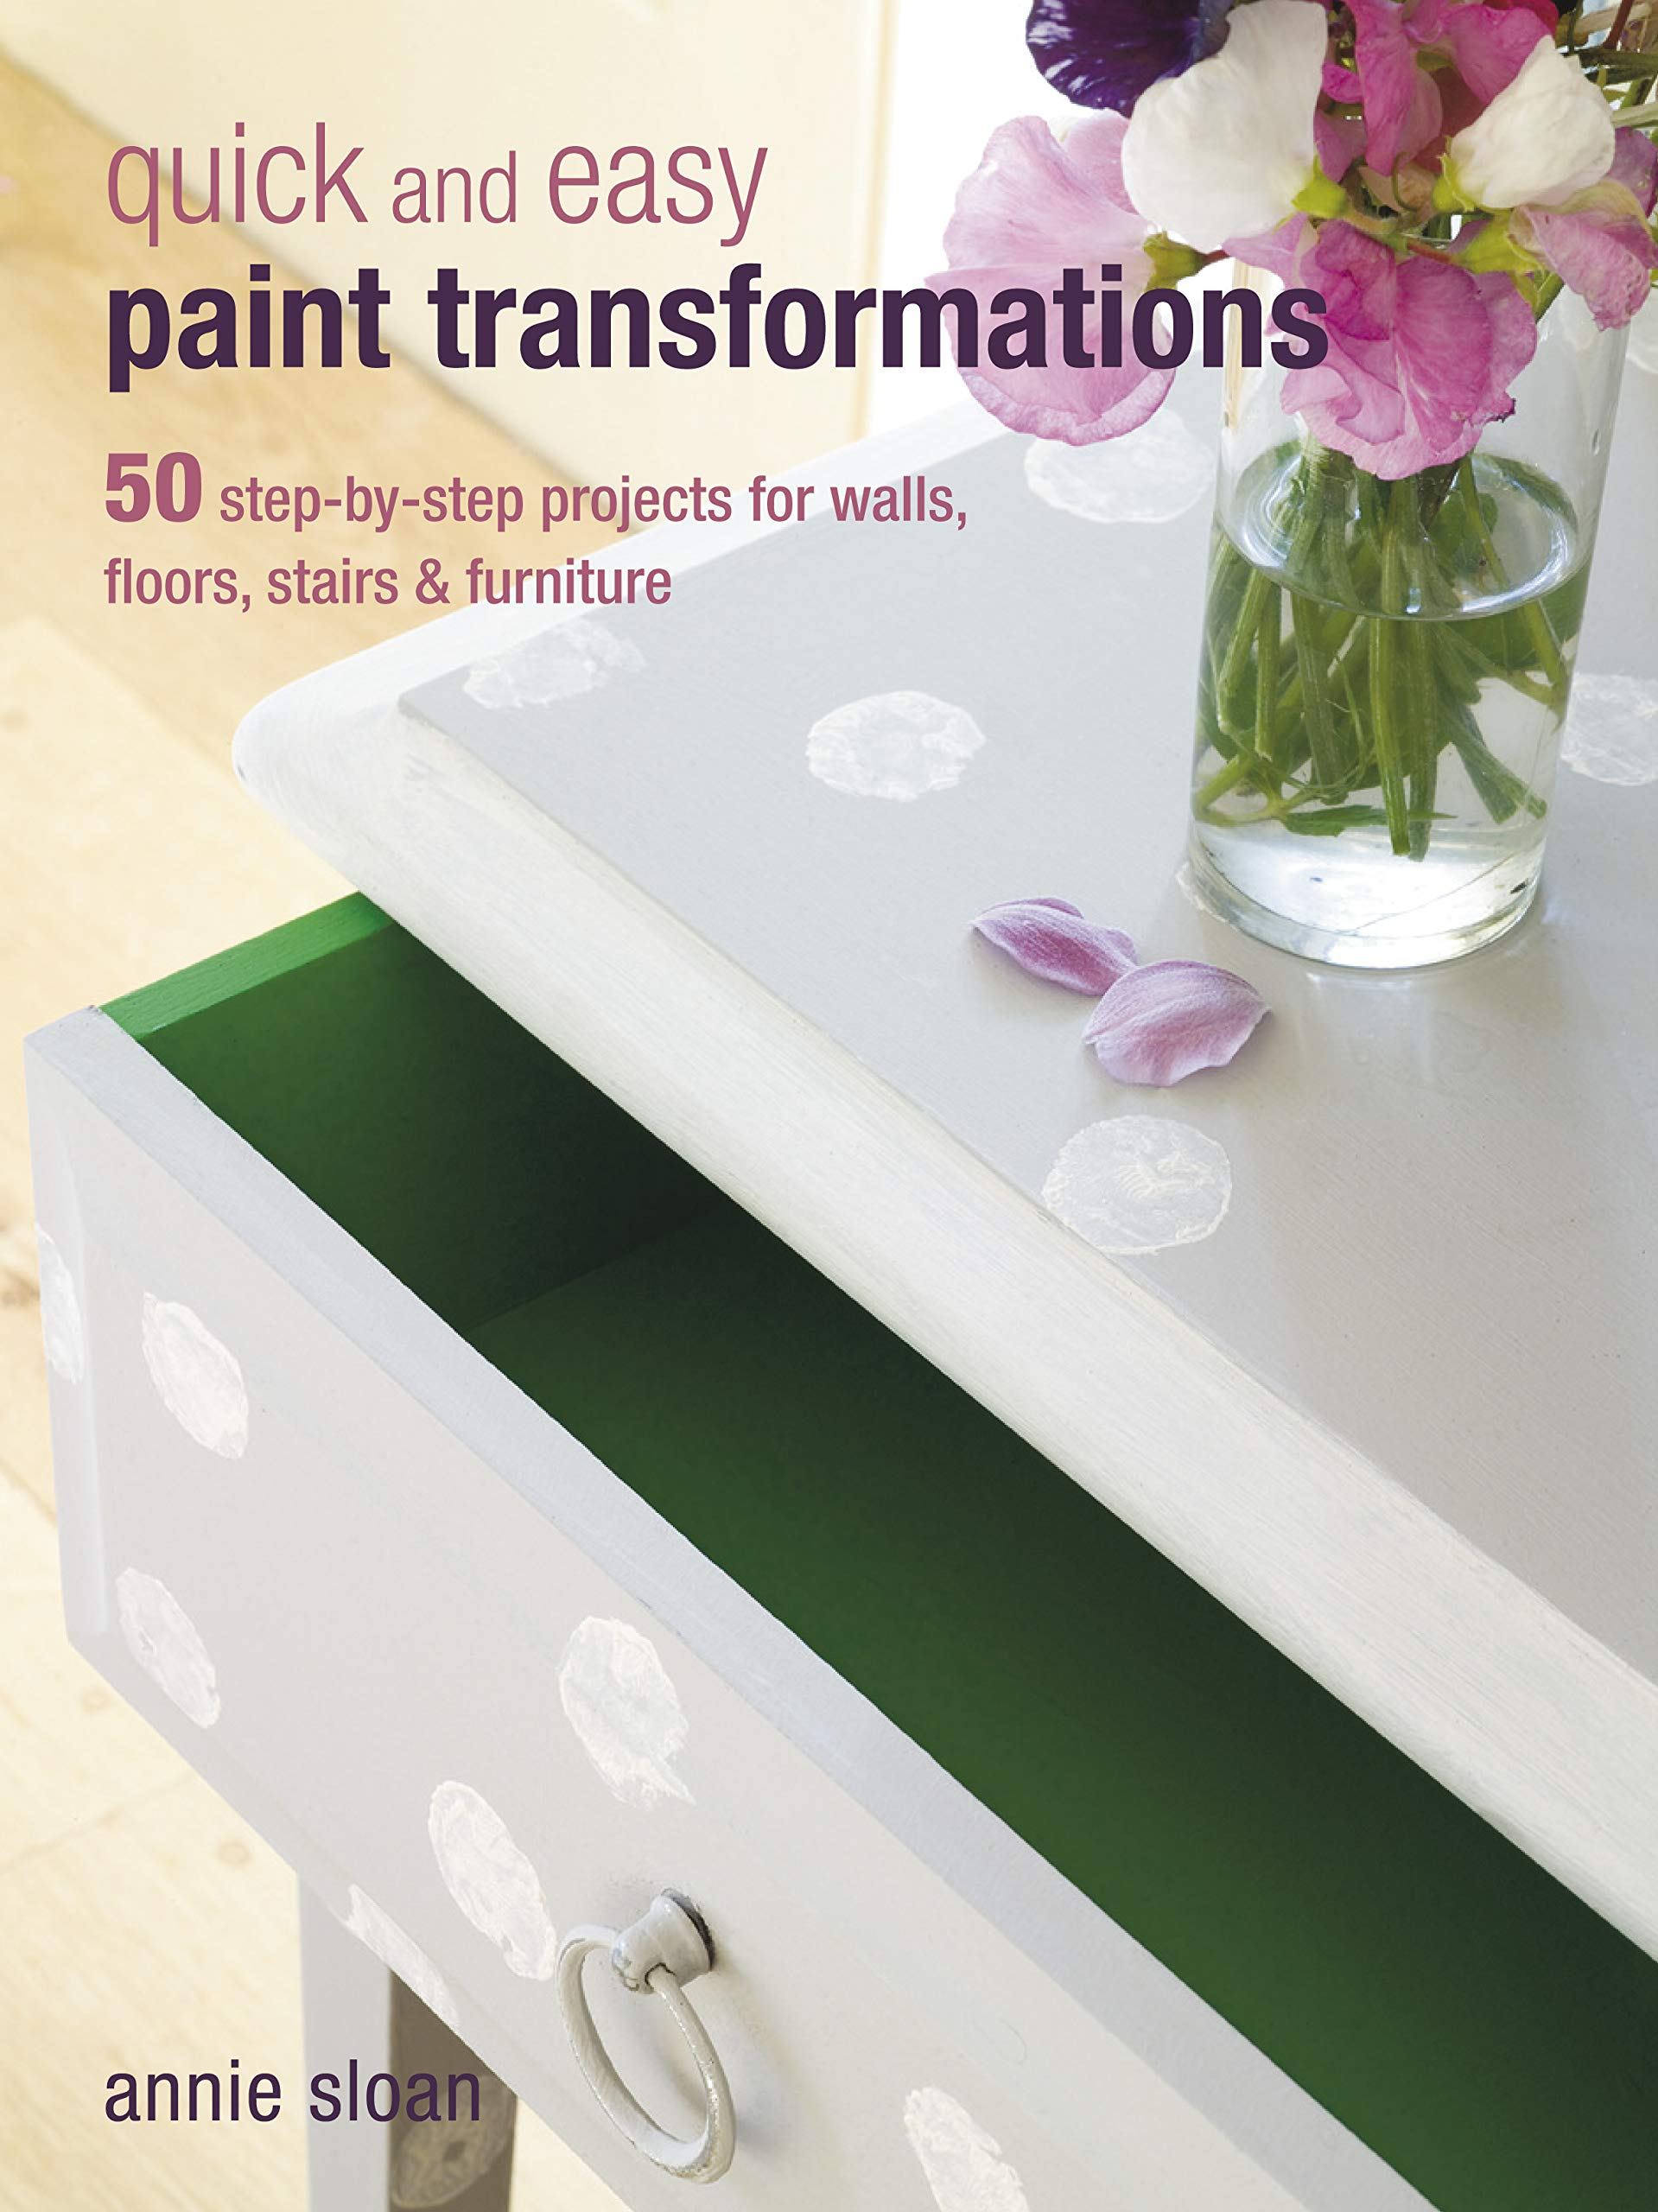 Image OfQuick And Easy Paint Transformations: 50 Step-by-step Ways To Makeover Your Home For Next To Nothing: 50 Step-By-Step Proj...